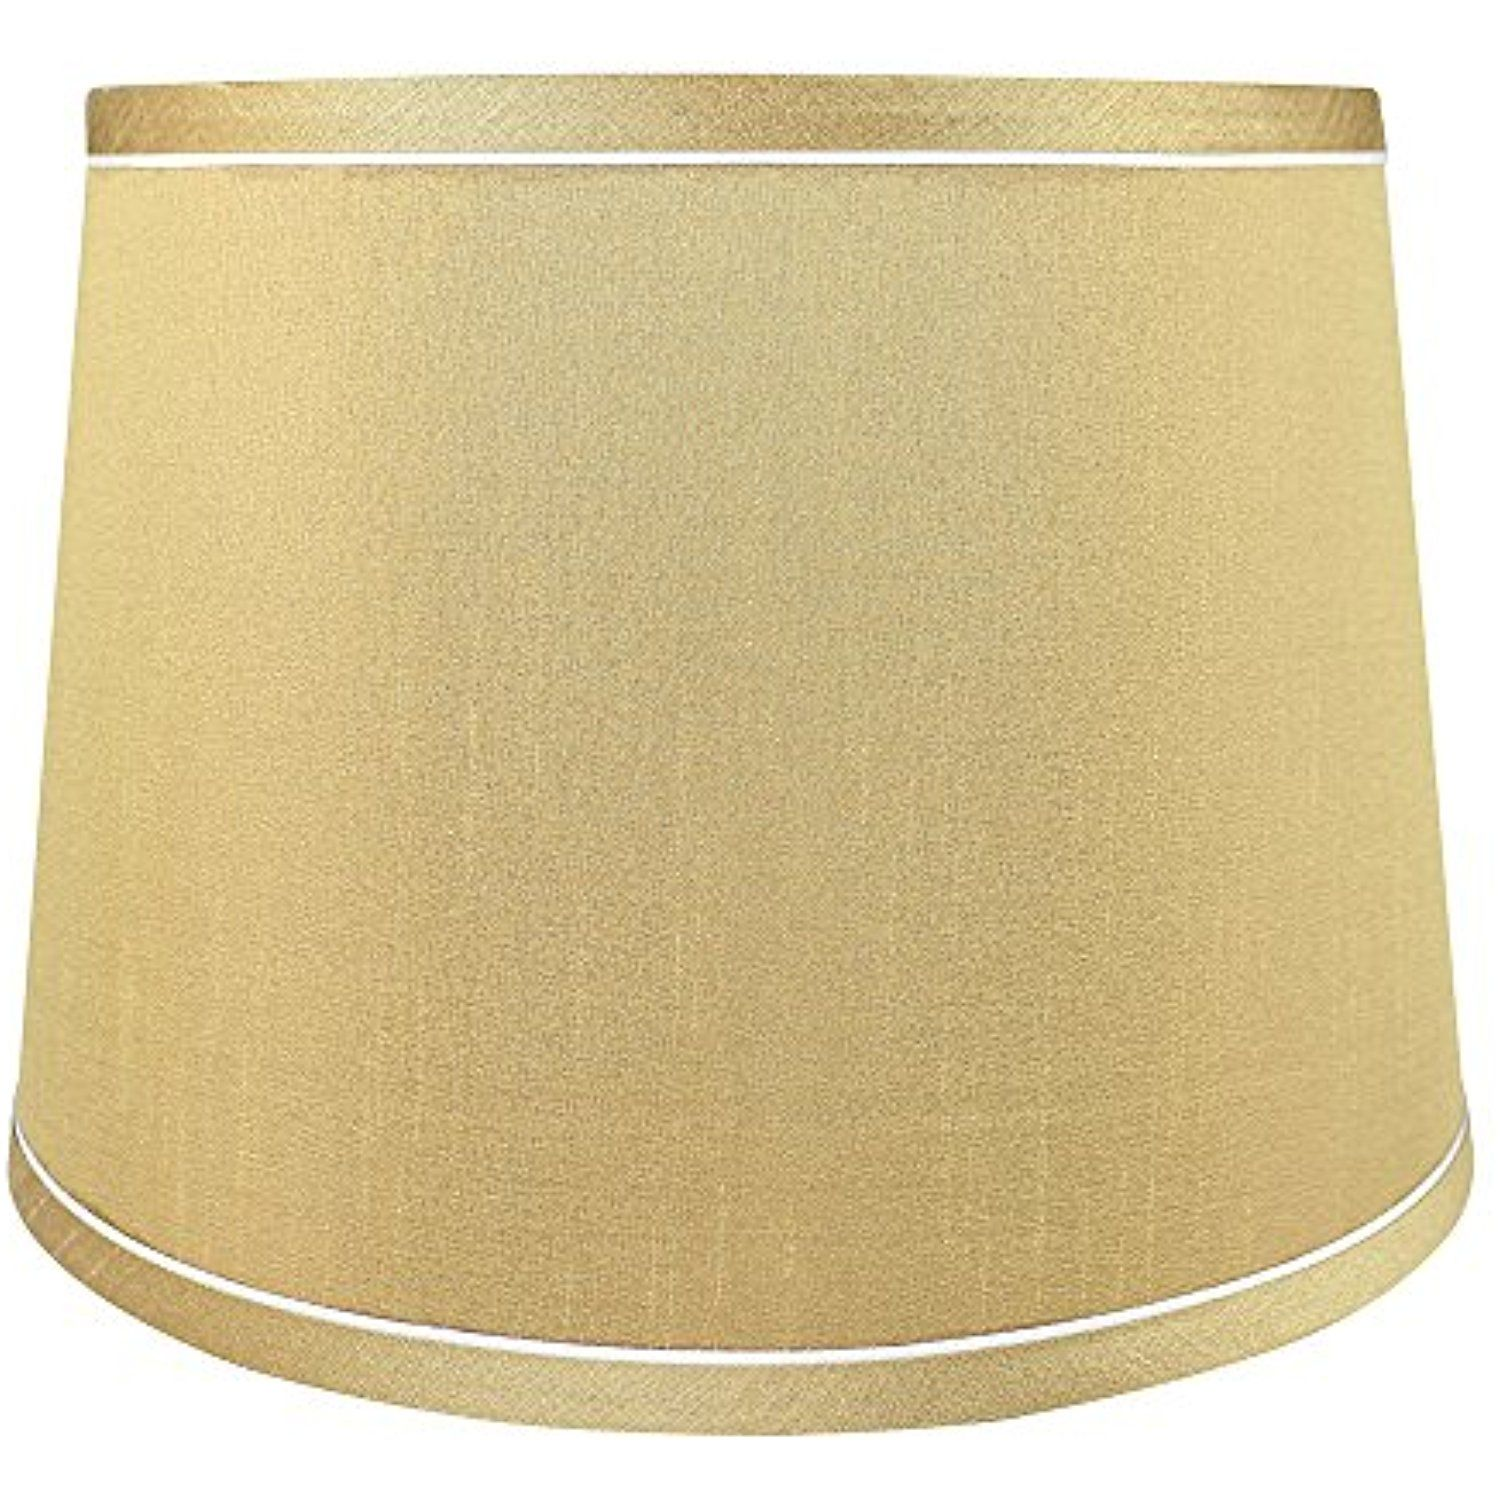 Urbanest French Drum With White Trim 10 Inch By 12 Inch By 8 1 2 Inch Lampshade Gold Silk You Can Find Out Mo White Trim Lighting Ceiling Fans 10 Things